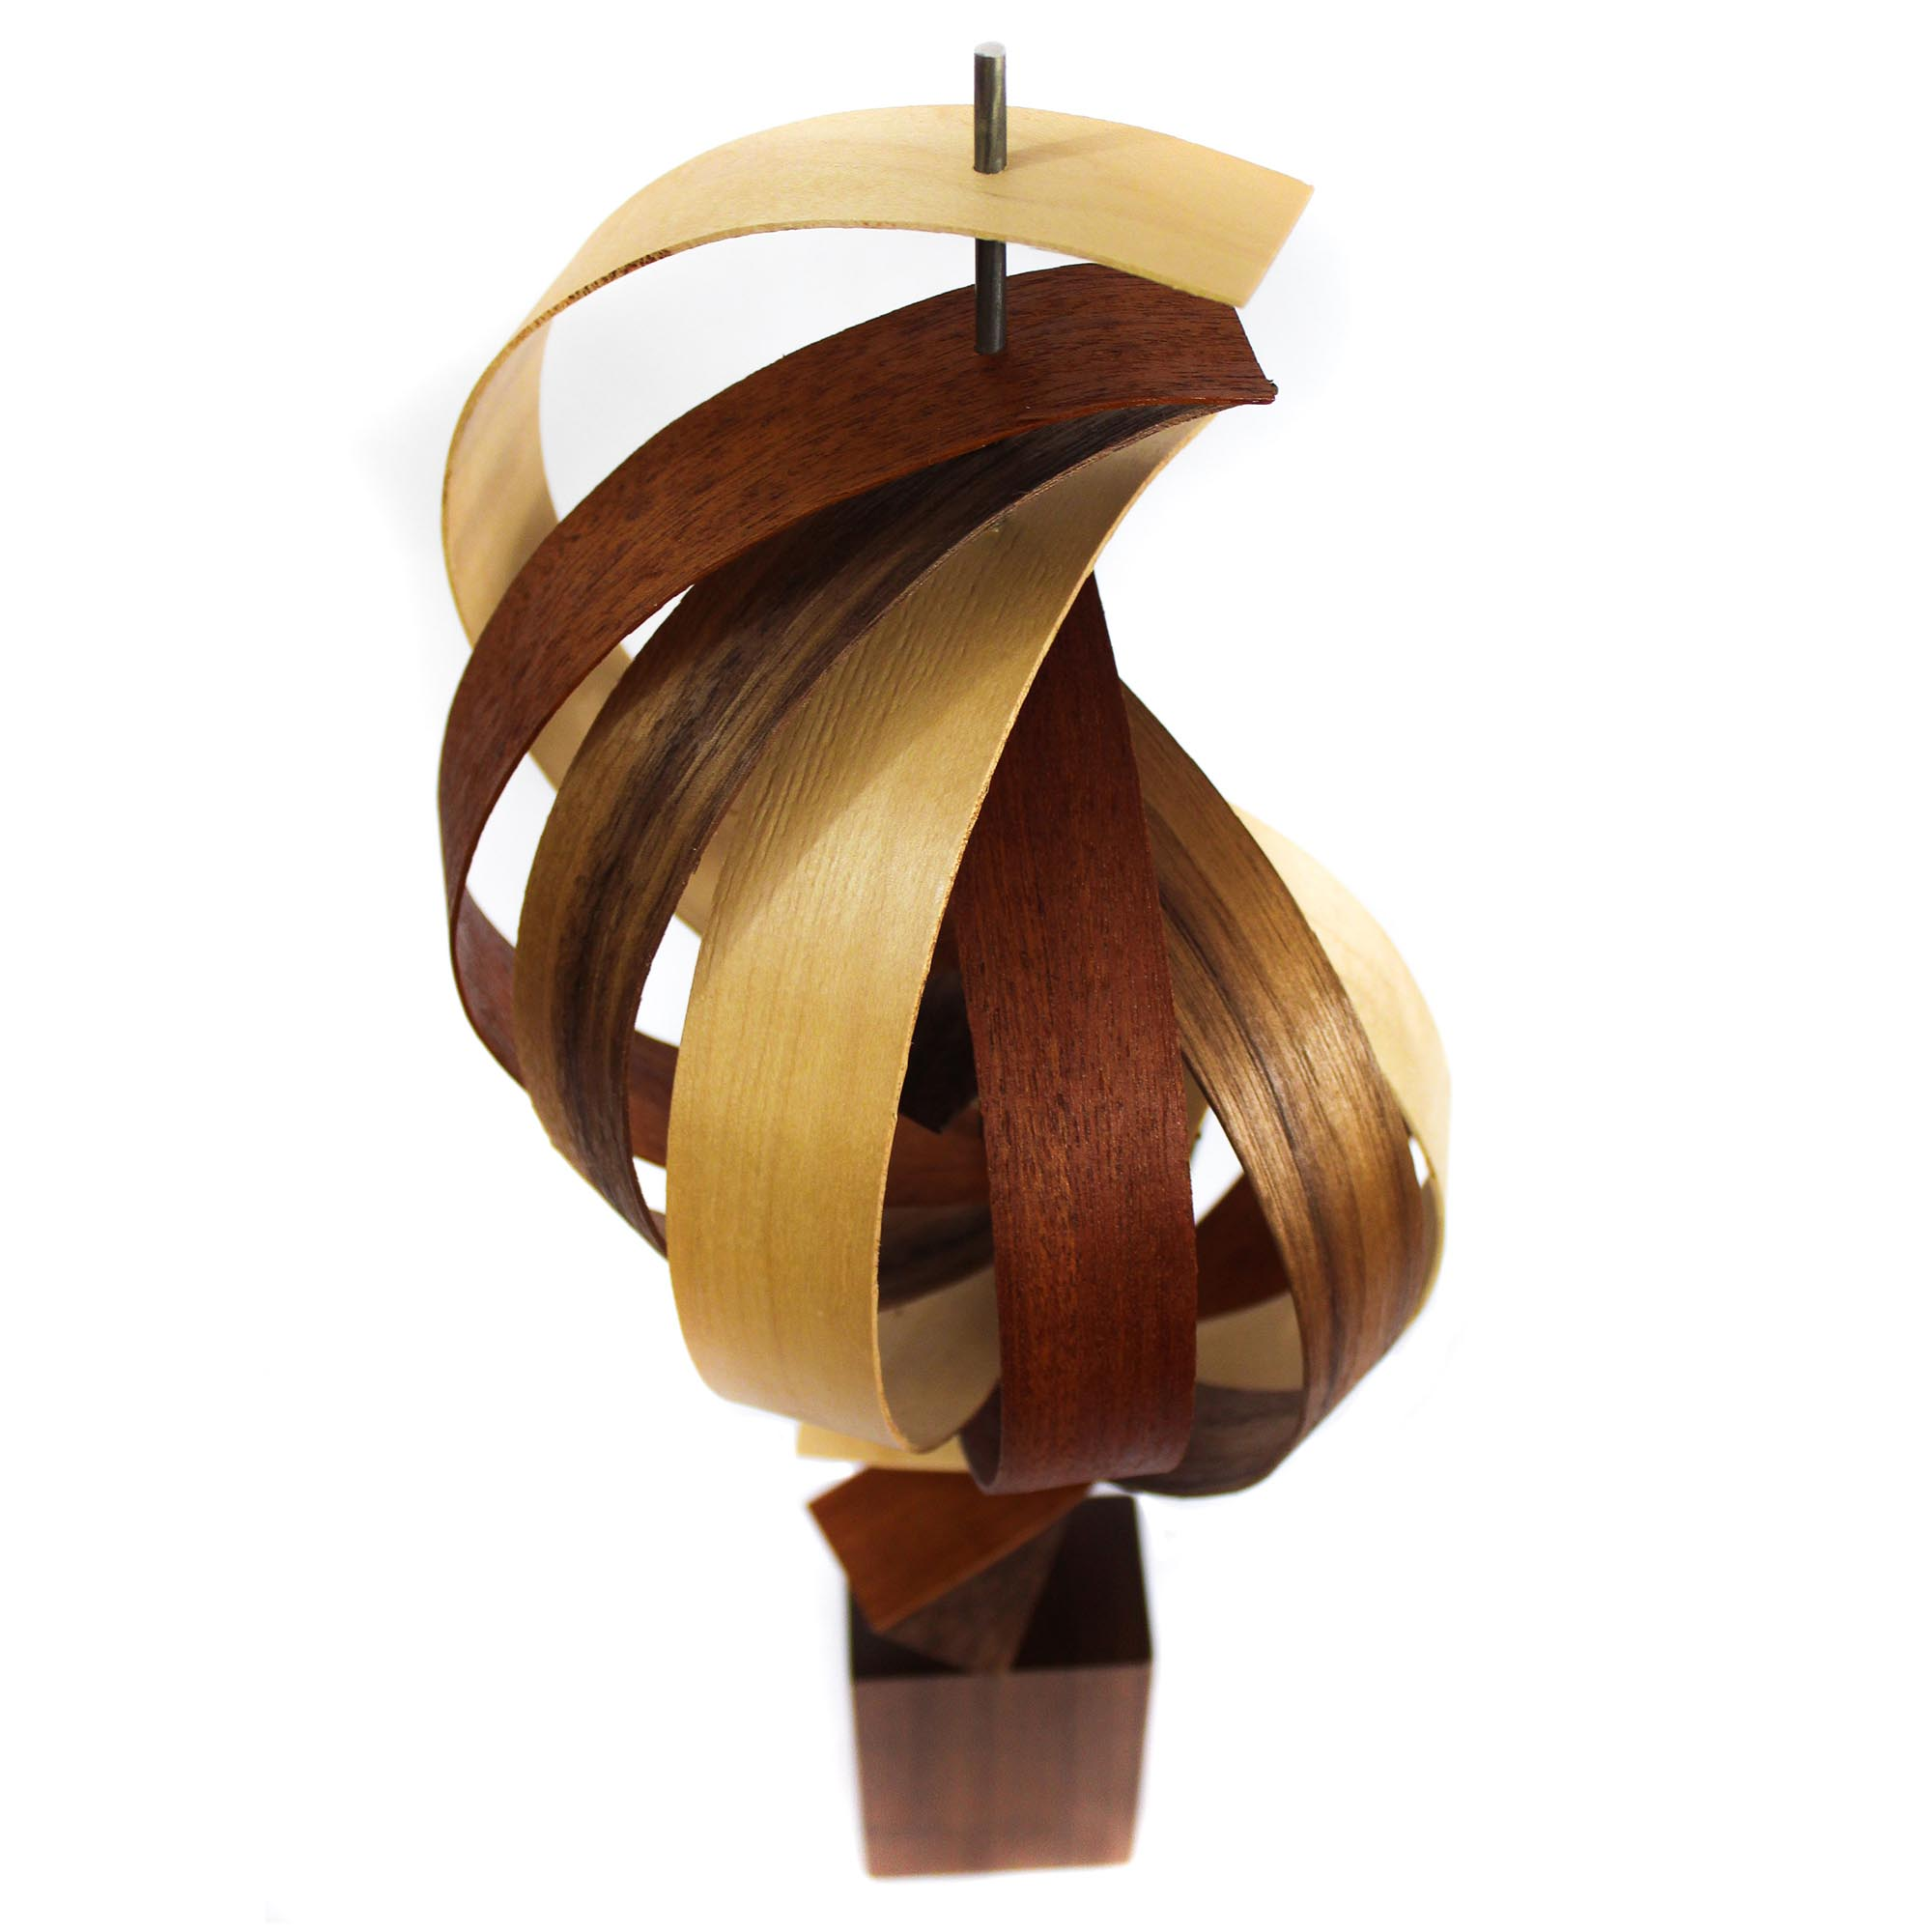 Reach by Jackson Wright - Modern Wood Sculpture, Mid-Century Home Decor - Image 3